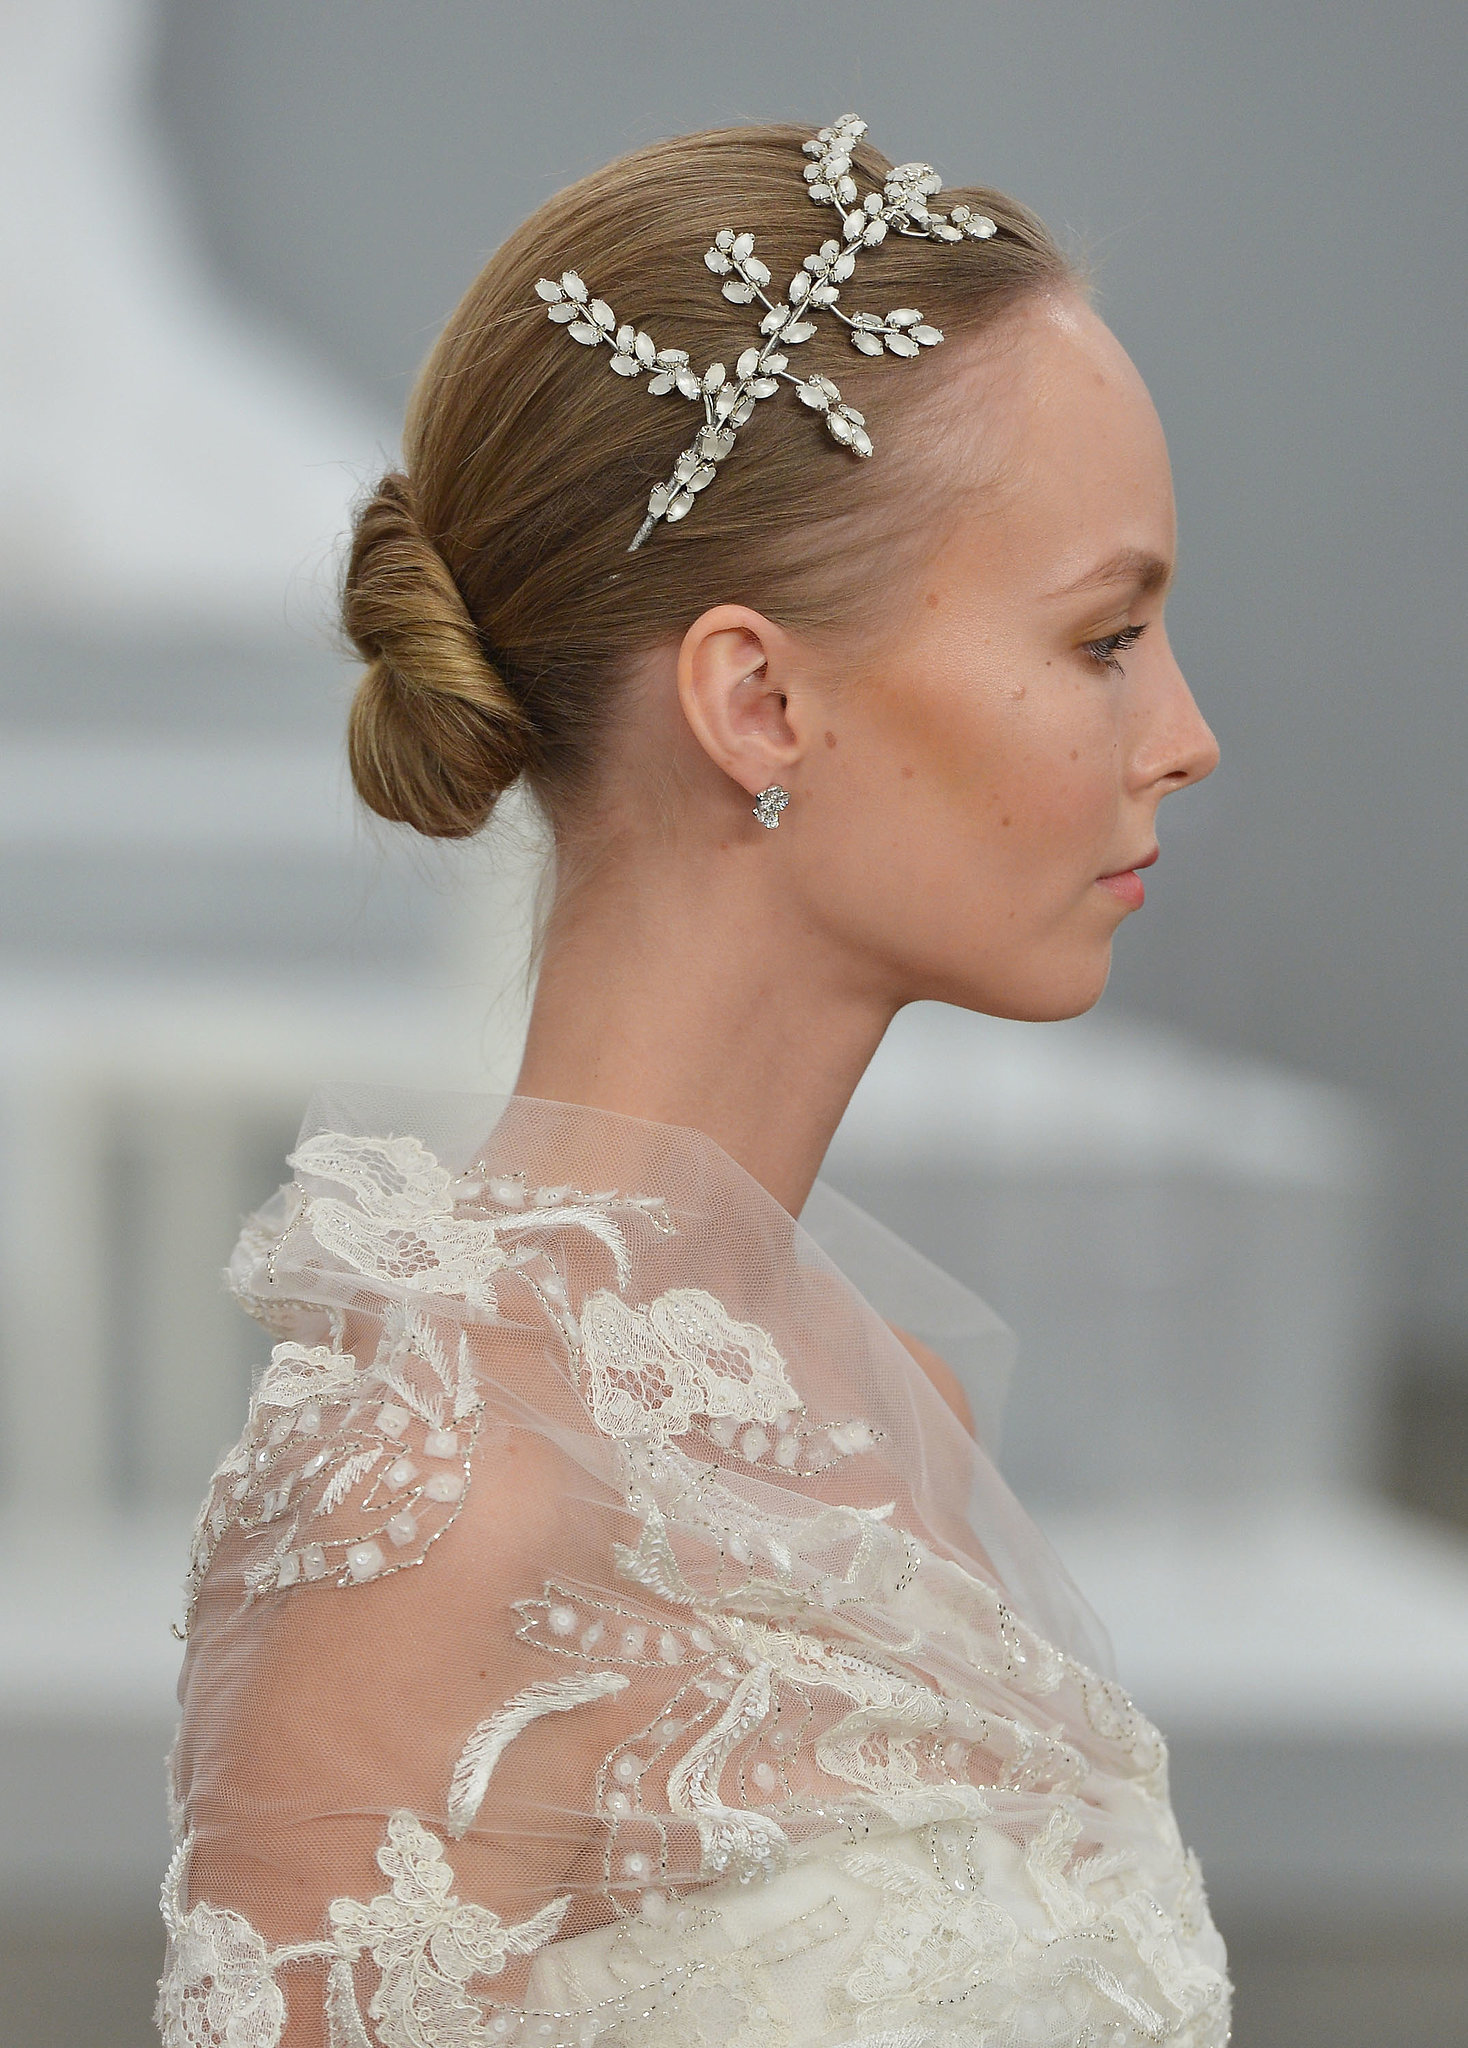 Monique Lhuillier Bridal Spring 2015  Zoom In on the